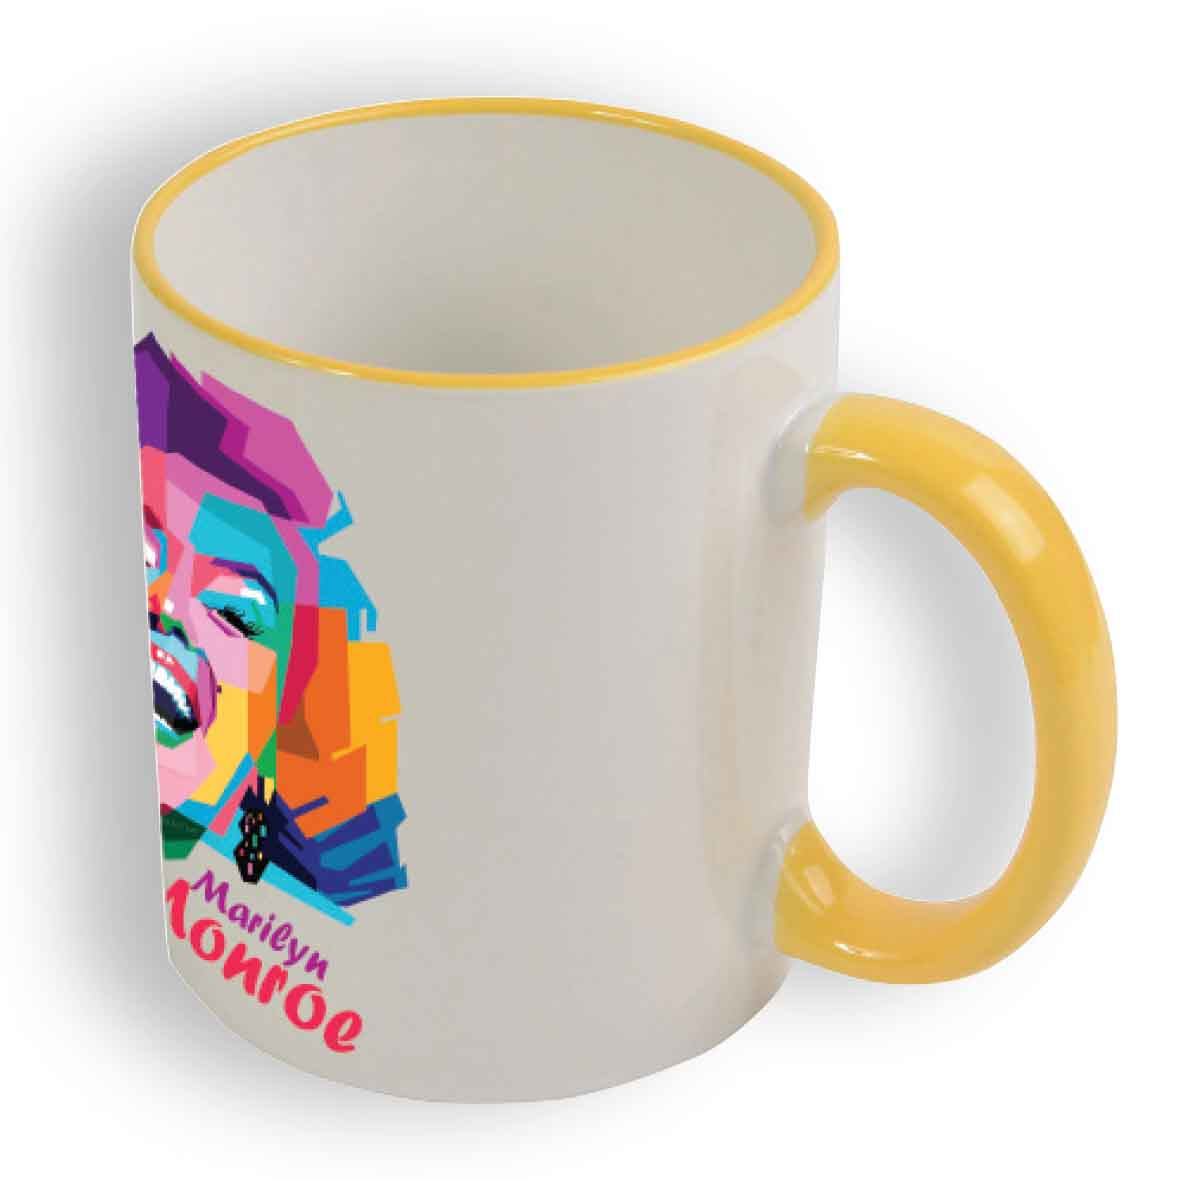 Sublimation mug 330 ml - Yellow sip-16433s06 subl